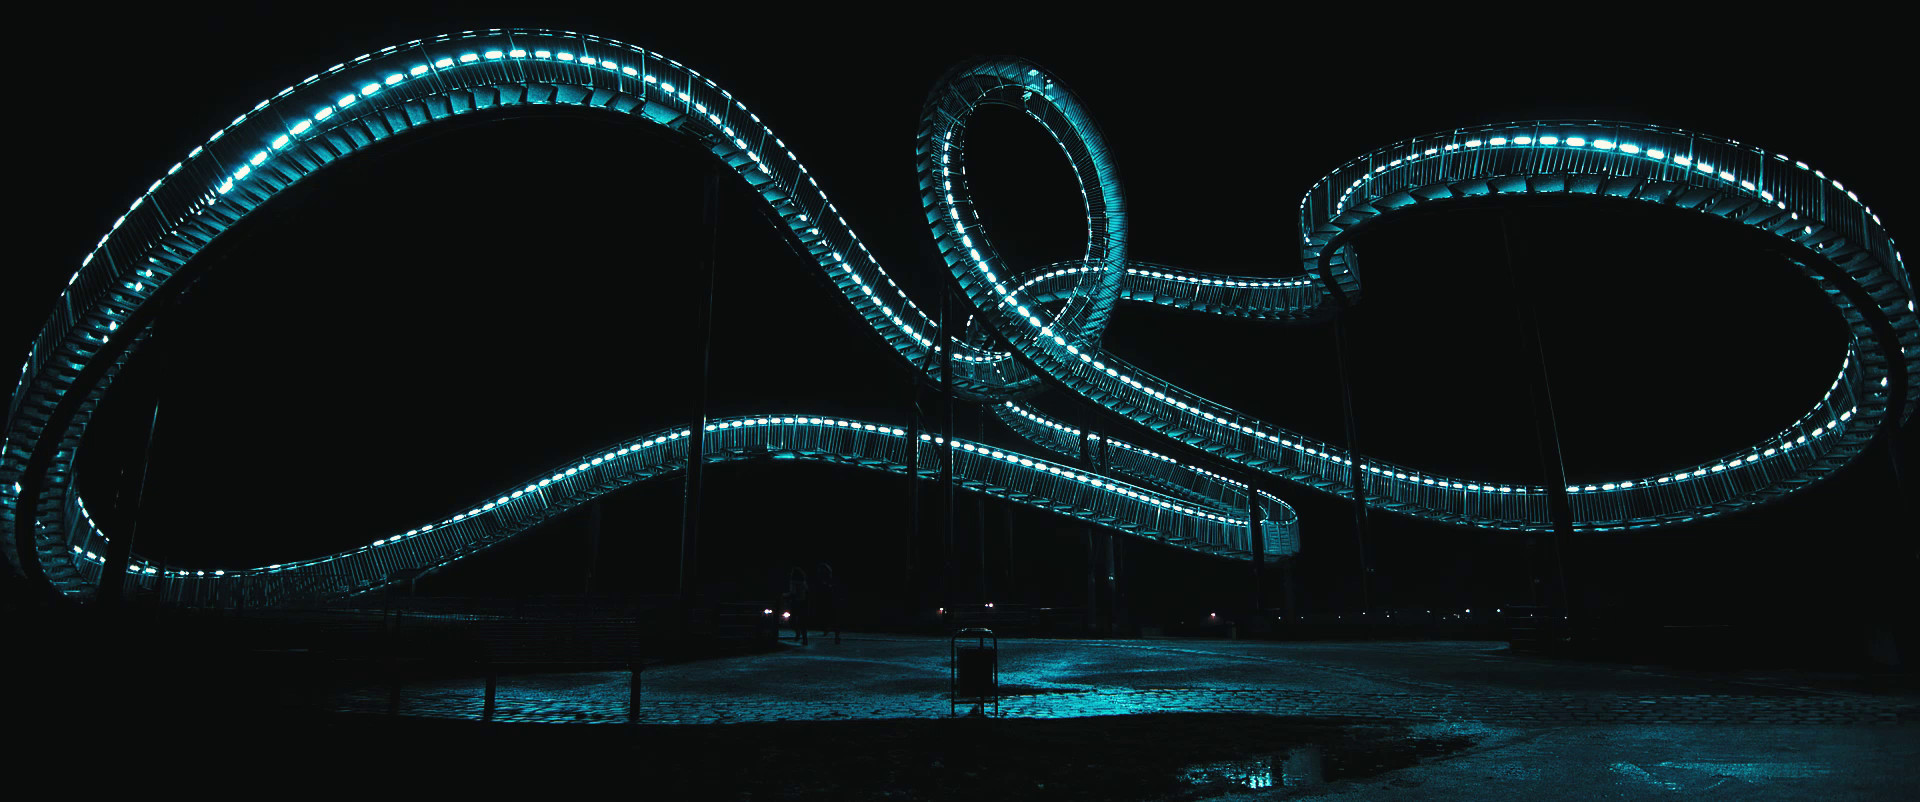 a futuristic elevated walking path twist and loops in the night